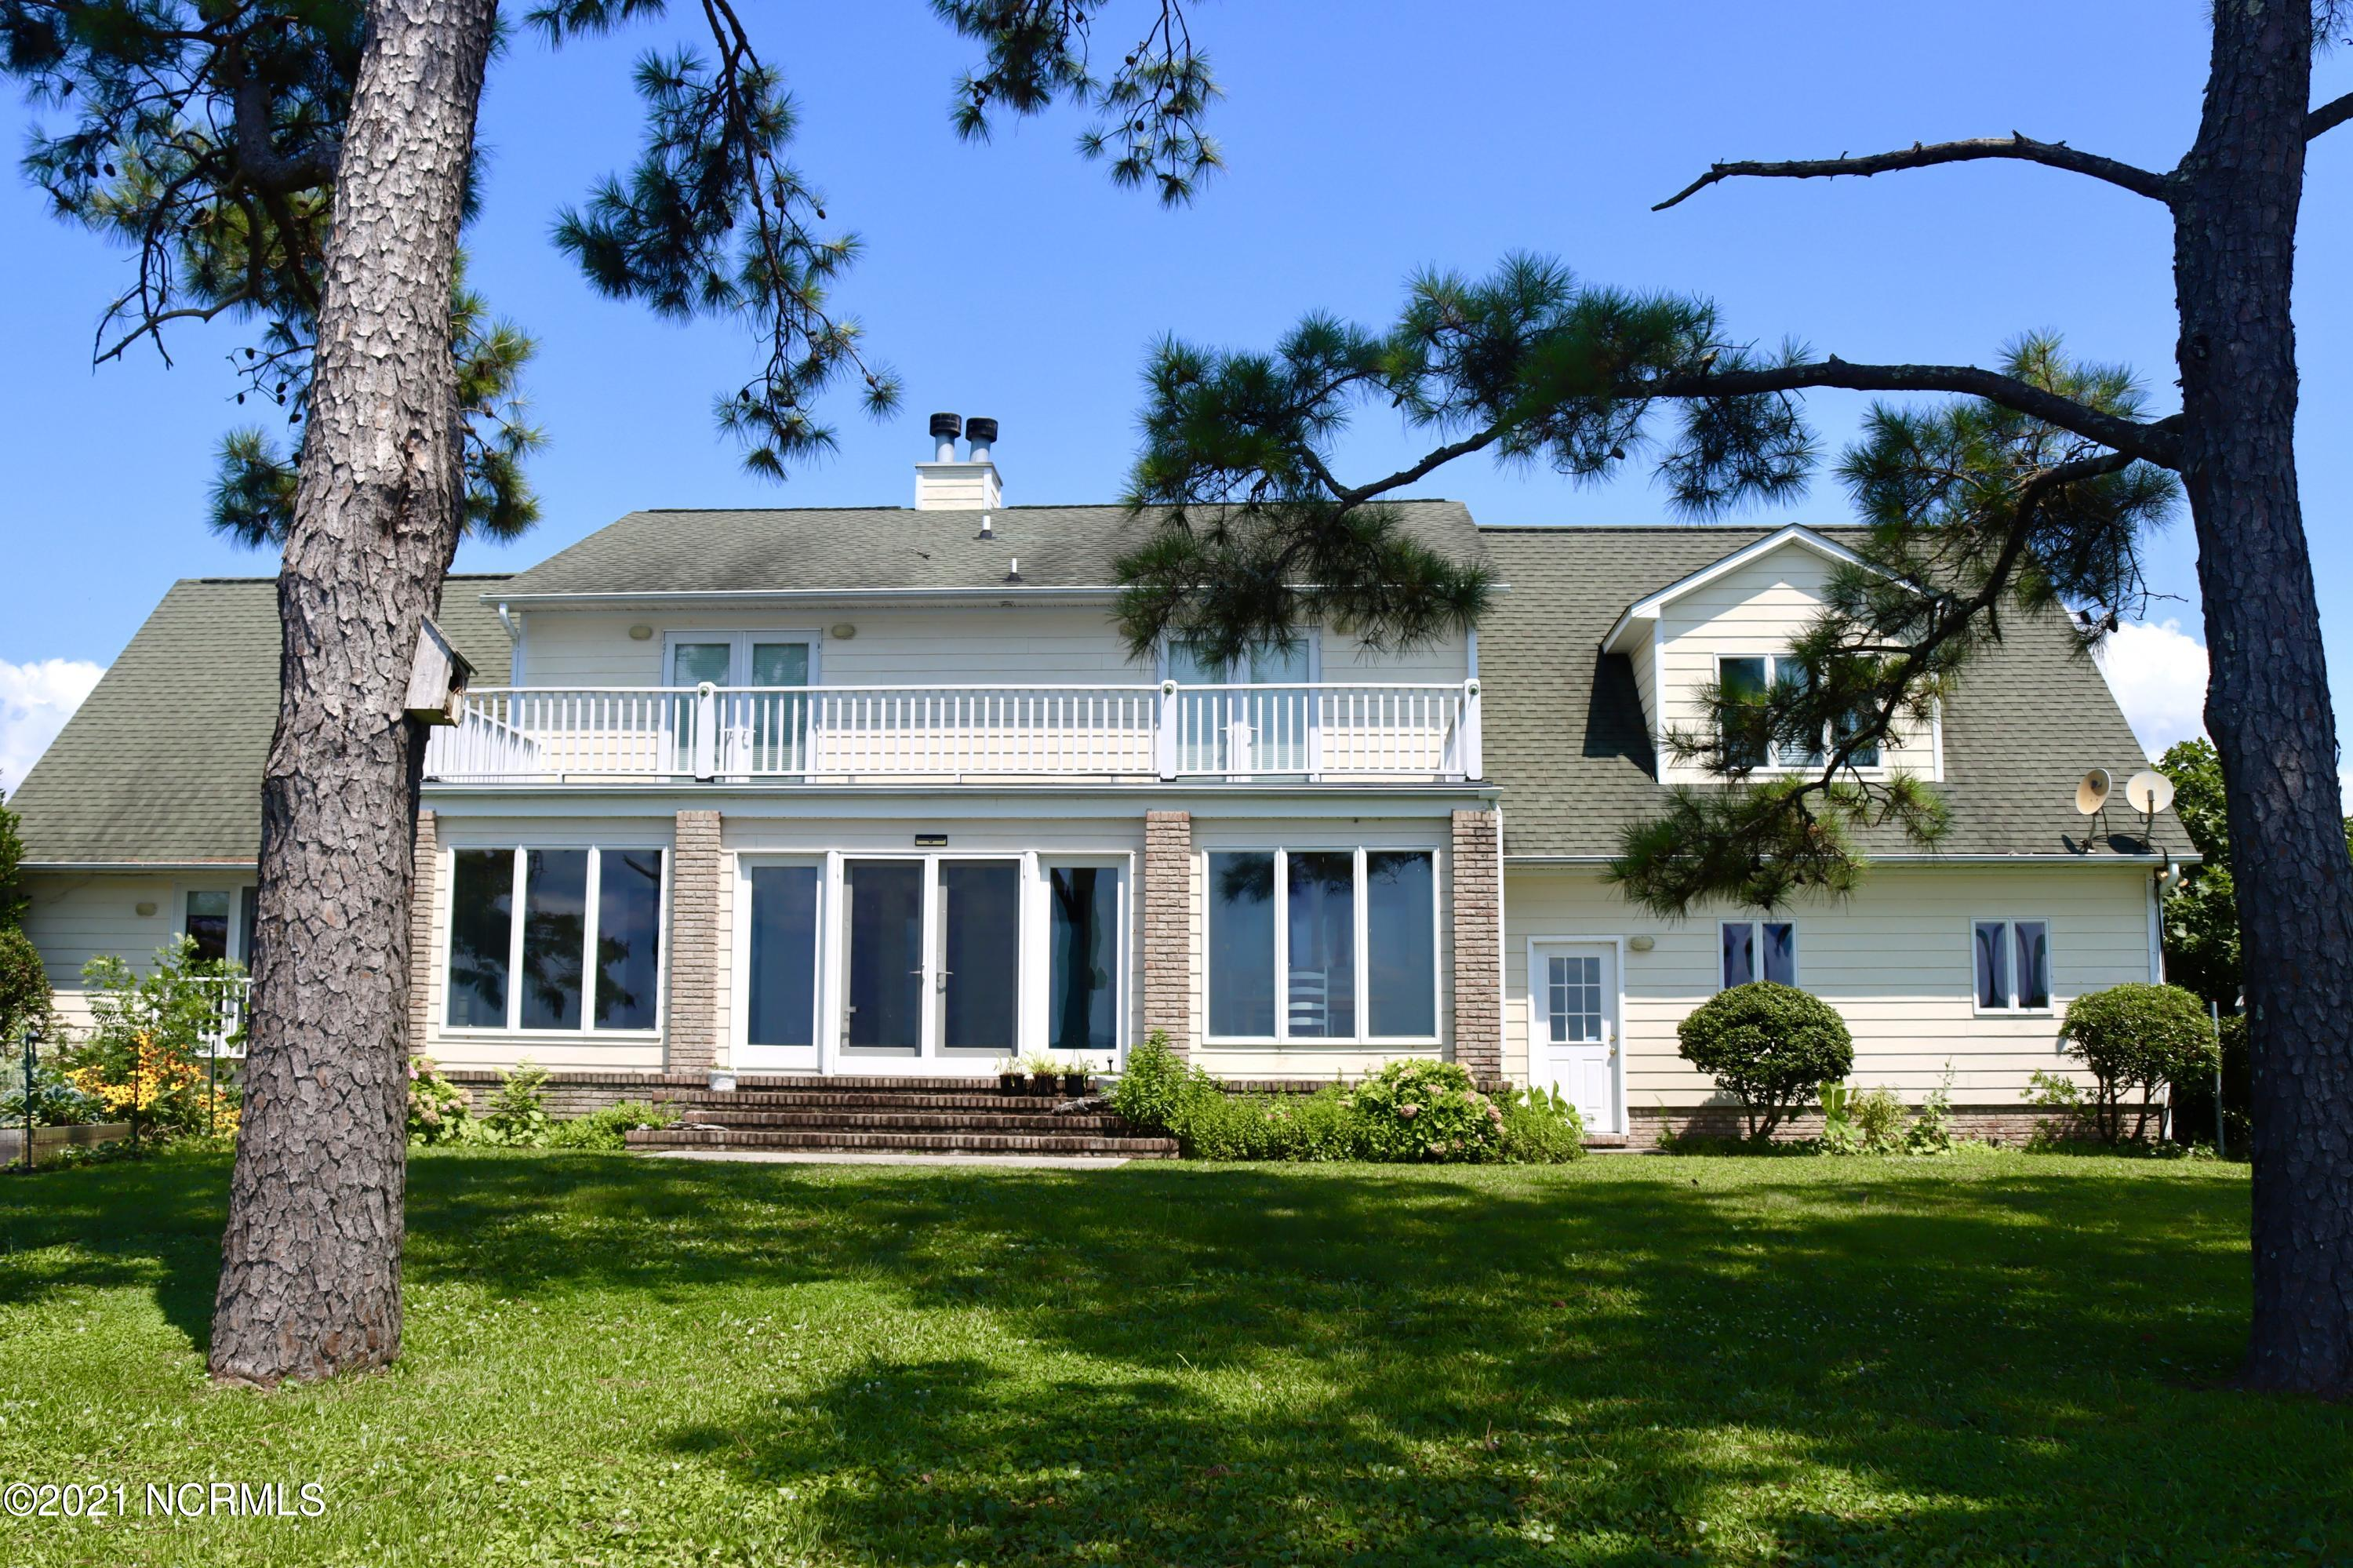 6034 Dolphin Road, Oriental, North Carolina 28571, 3 Bedrooms Bedrooms, 9 Rooms Rooms,2 BathroomsBathrooms,Single family residence,For sale,Dolphin,100279707